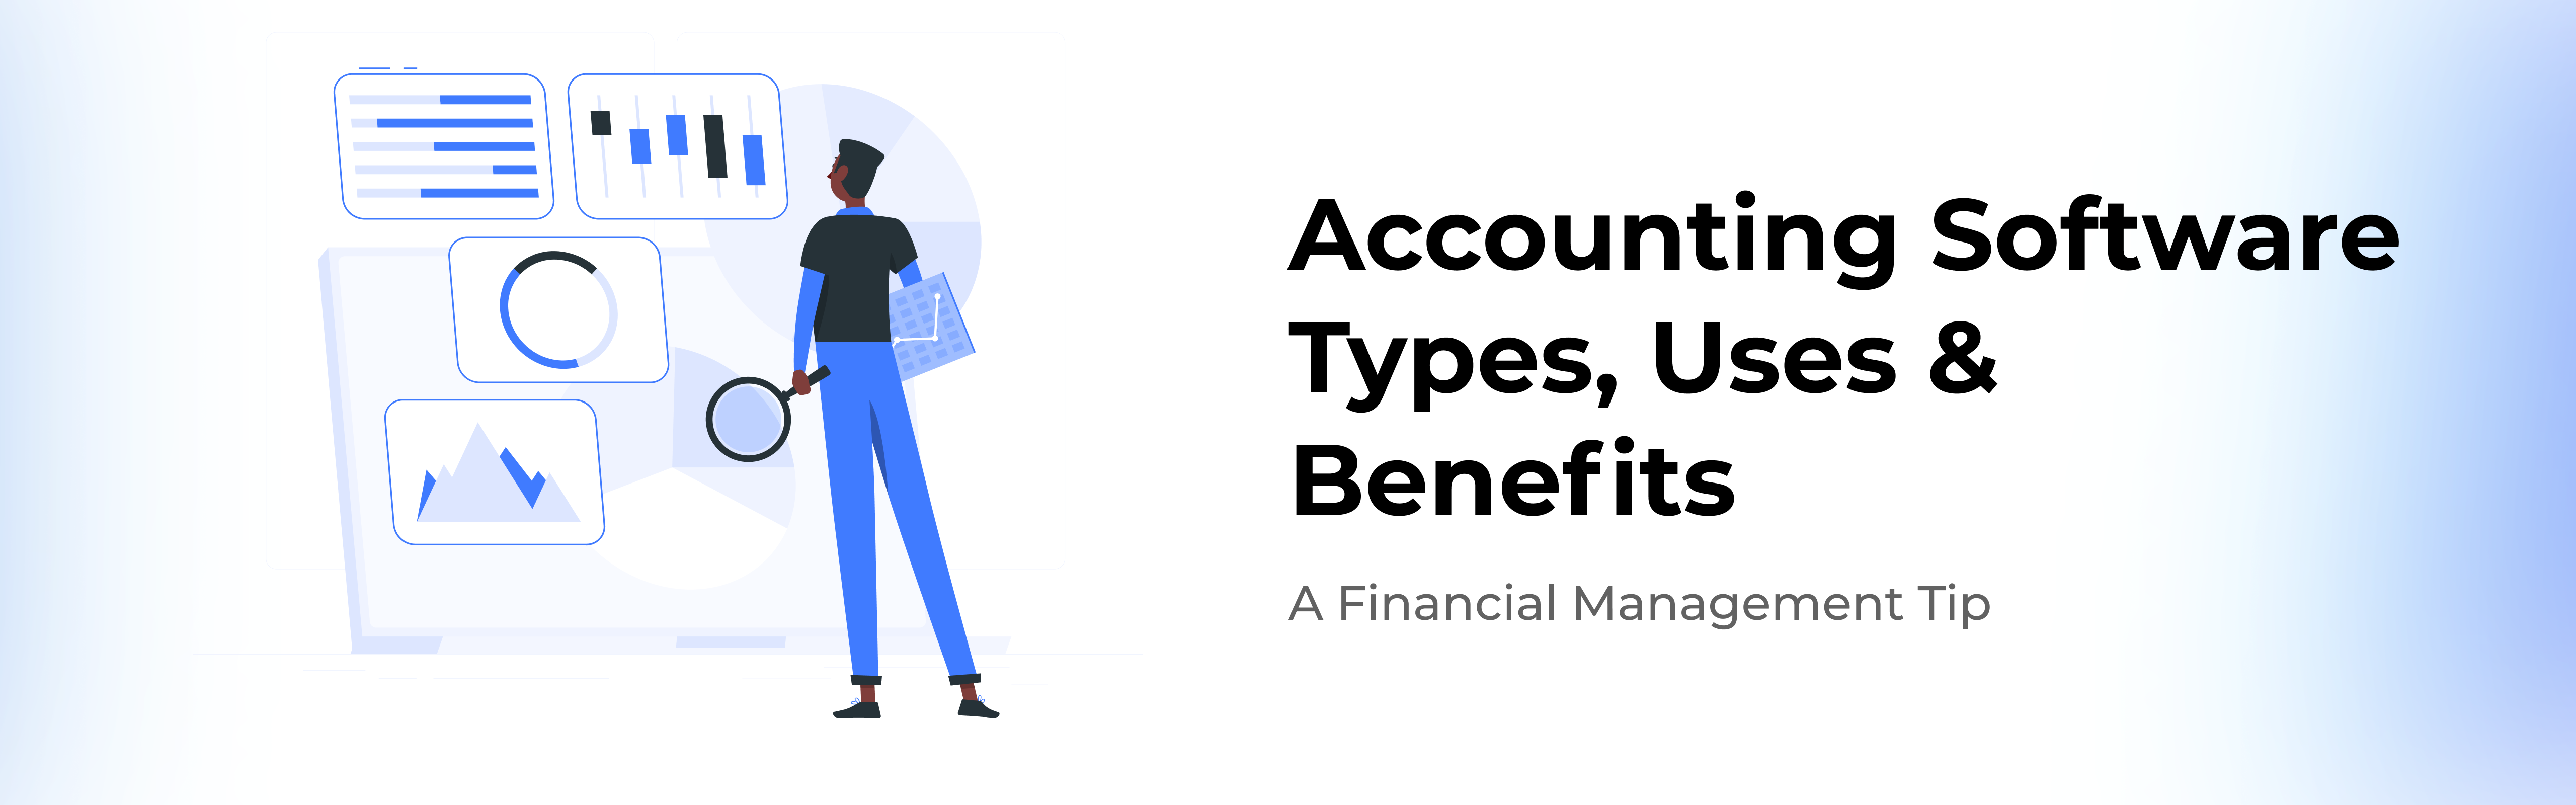 accounting-software-types-uses,benefits